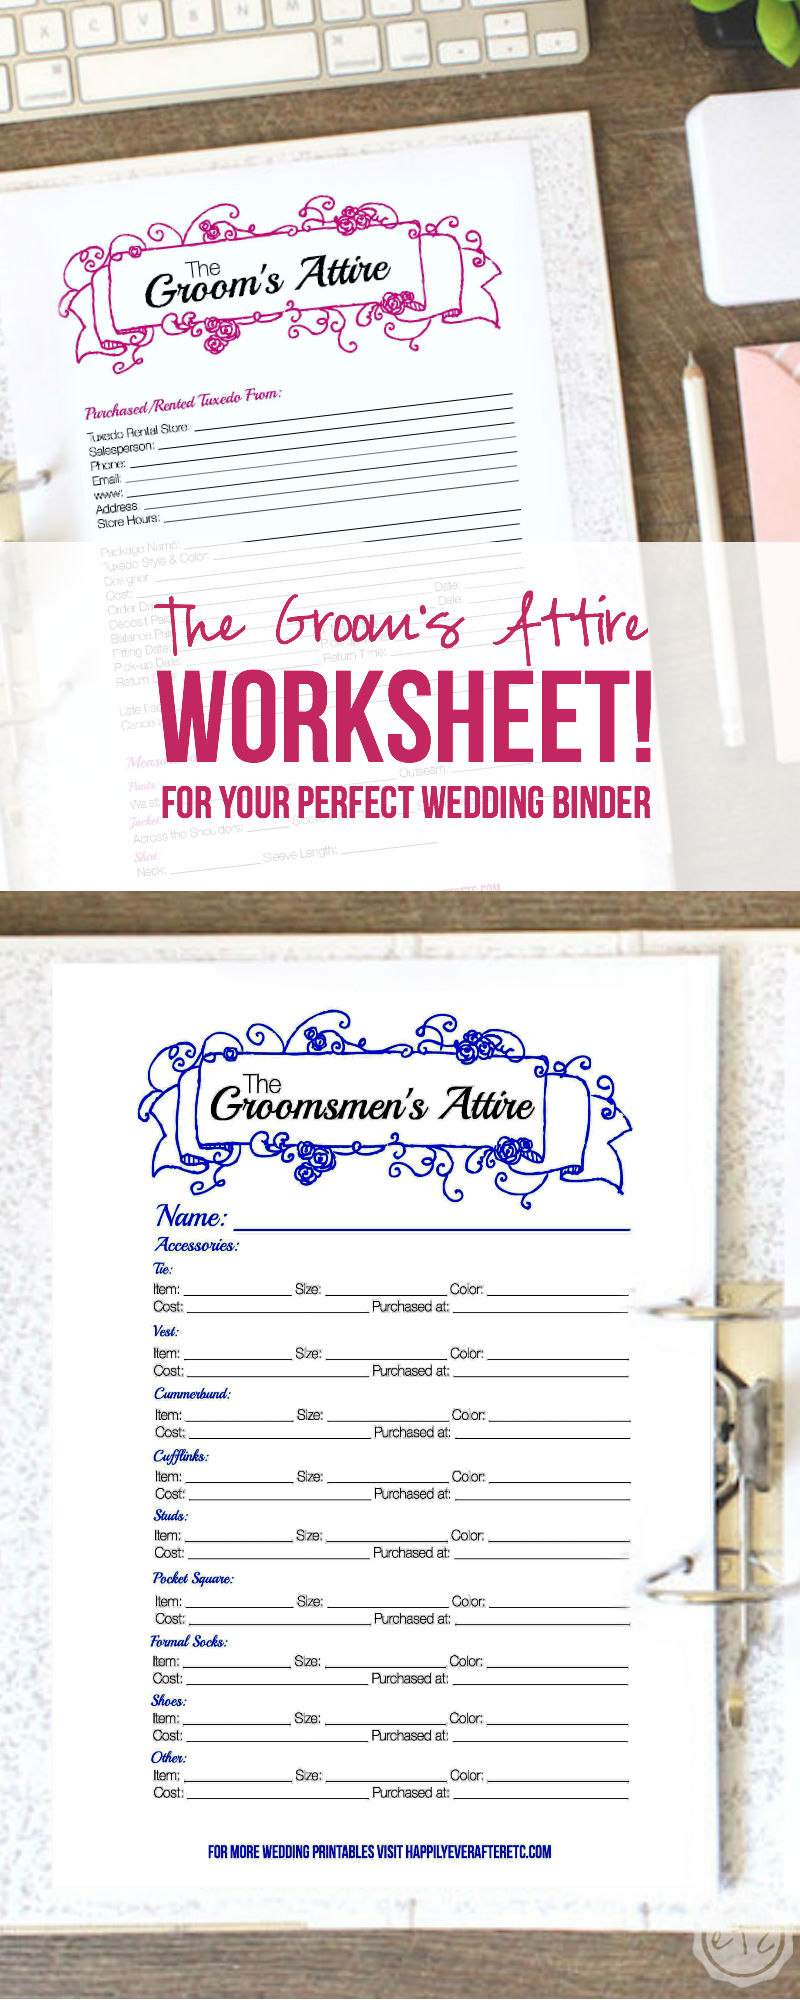 Add this Groom's Attire worksheet to your perfect Wedding Binder!